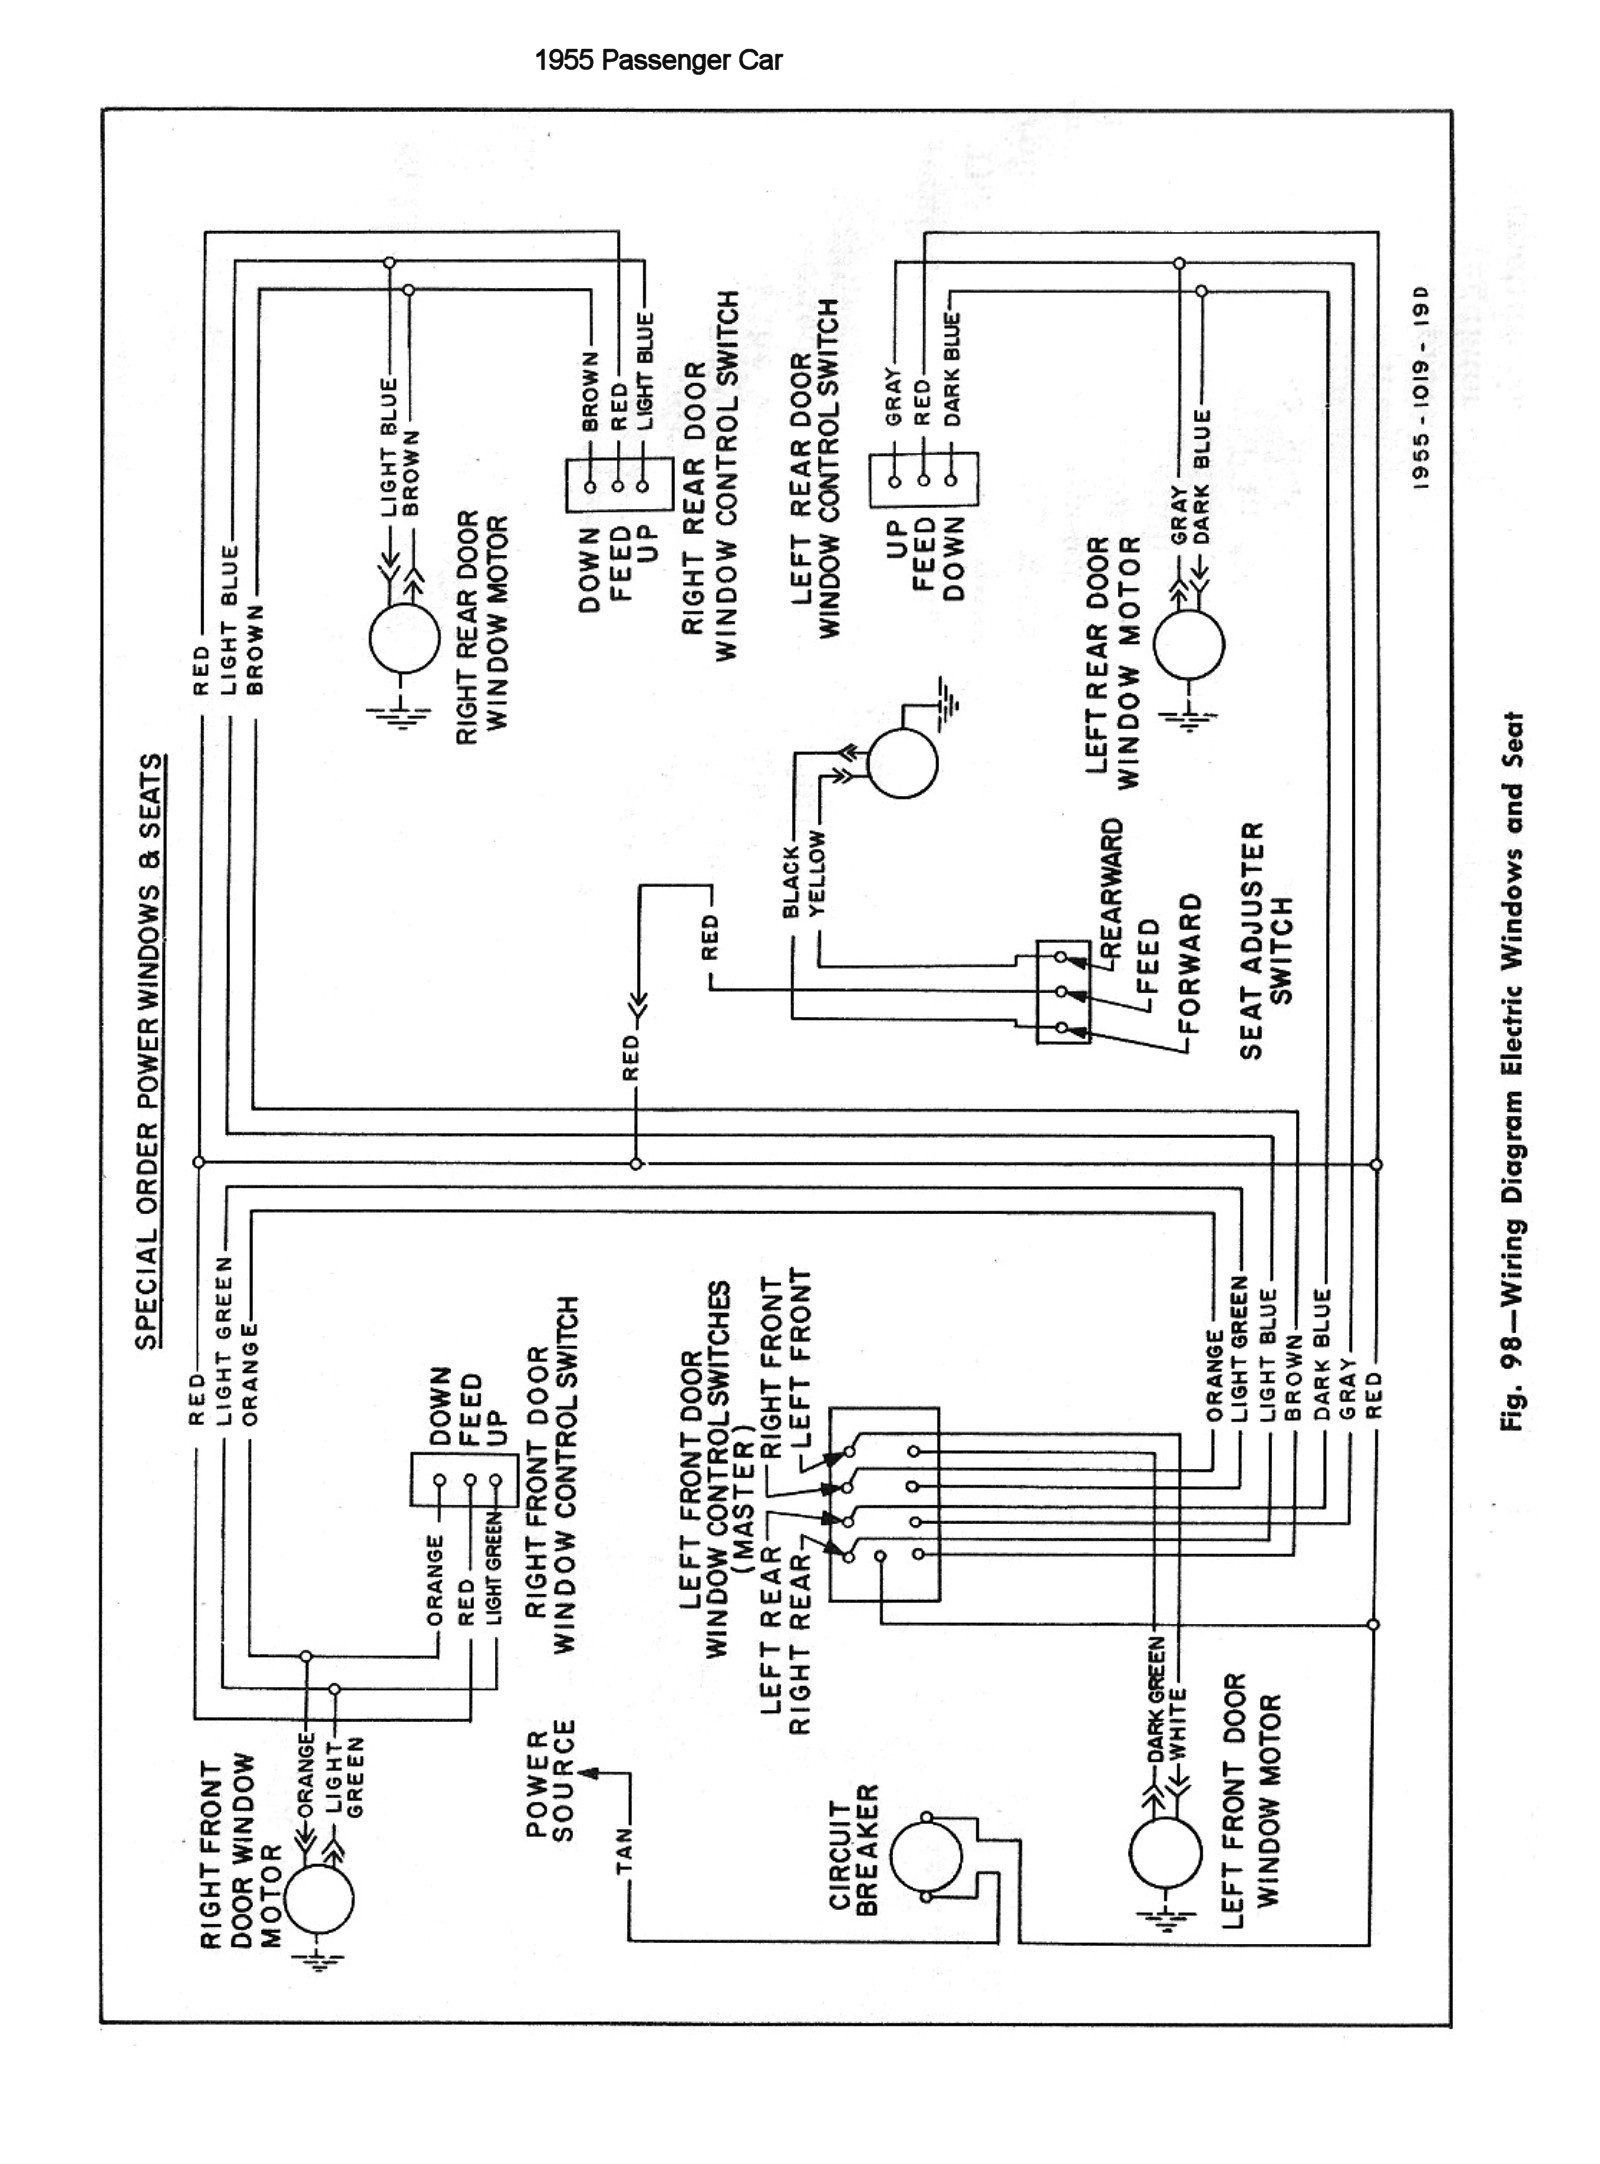 wiring diagram of turn signal wiring diagram list wiring diagram for universal turn signal switch 55 [ 1600 x 2164 Pixel ]